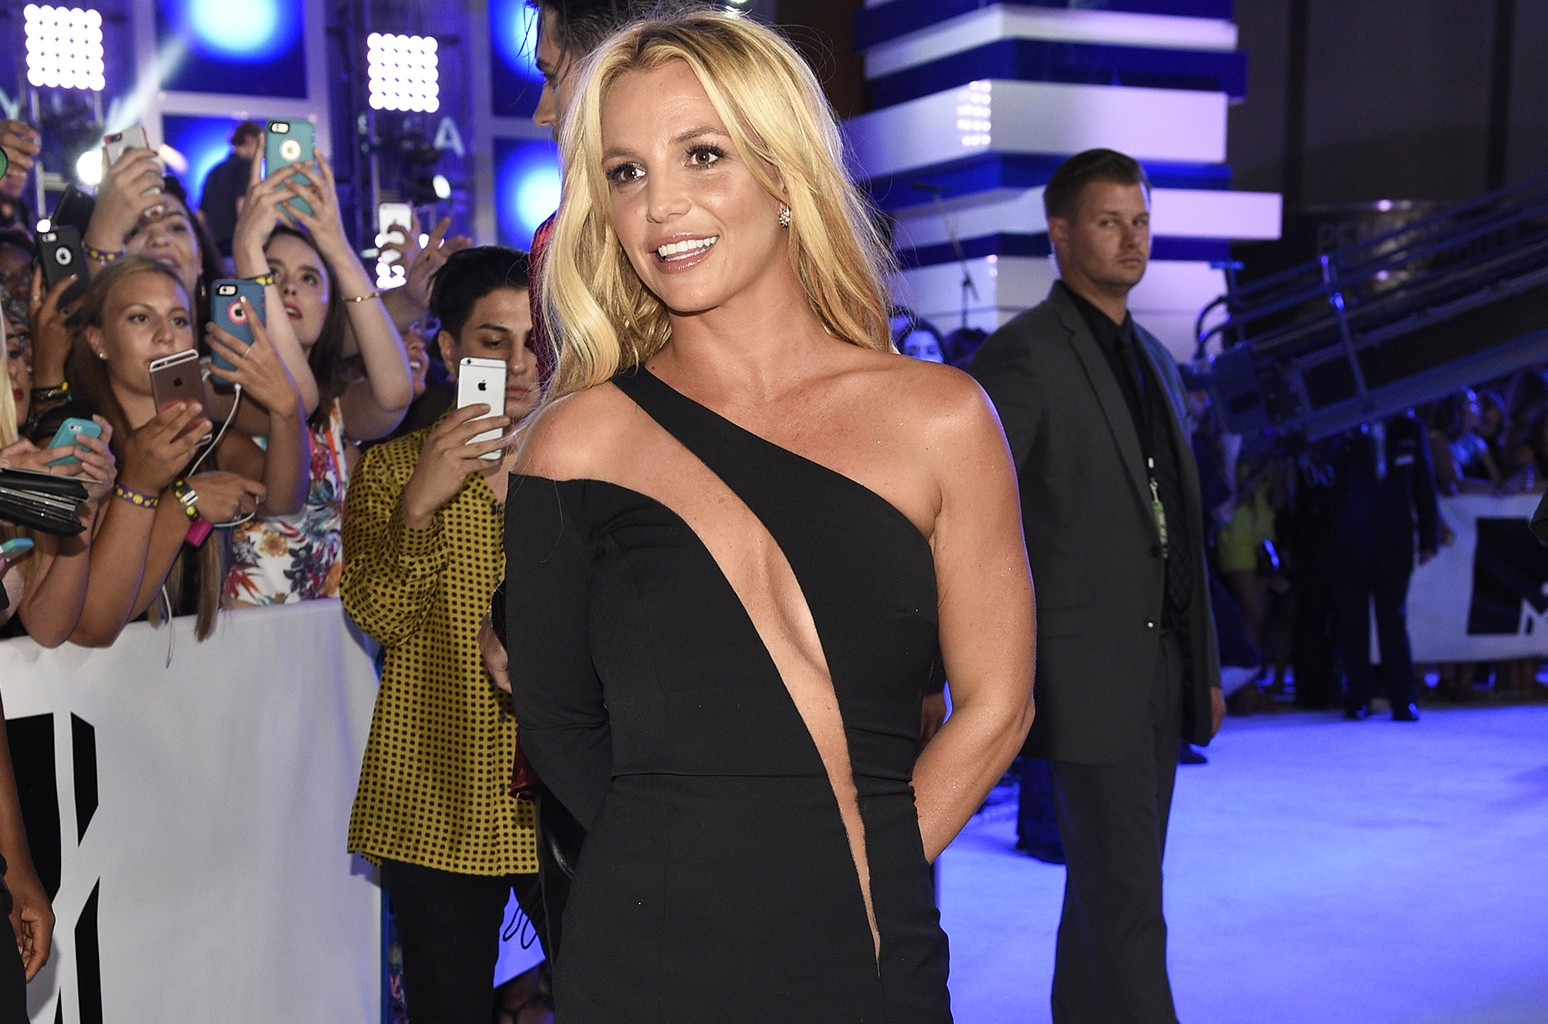 Britney Spears arrives at the MTV Video Music Awards at Madison Square Garden on Sunday, Aug. 28, 2016, in New York.